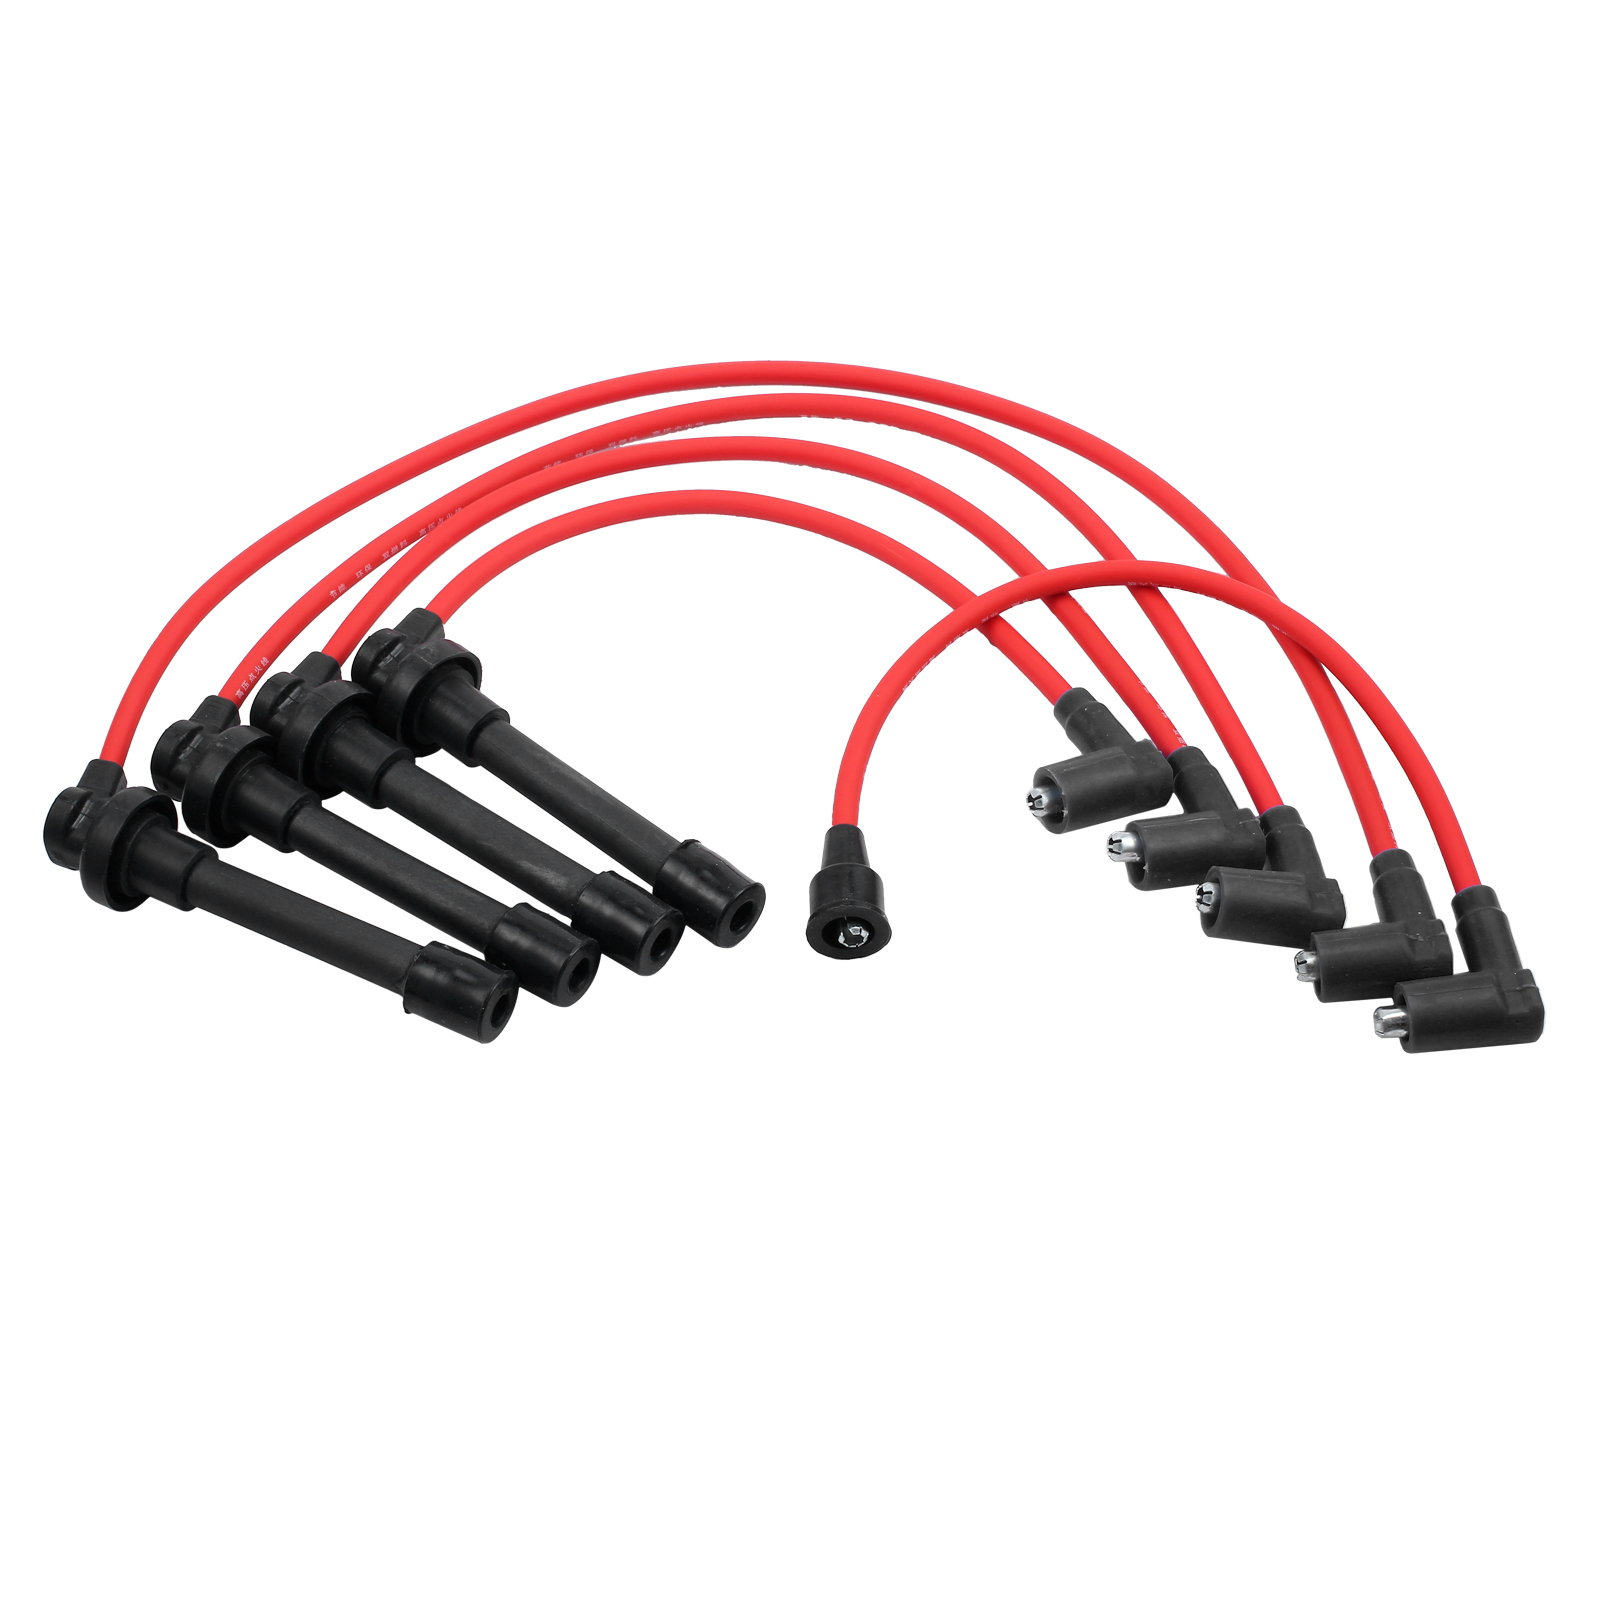 Details about 5pc NEW Spark Plug Ignition Wire Set High Perfomance on